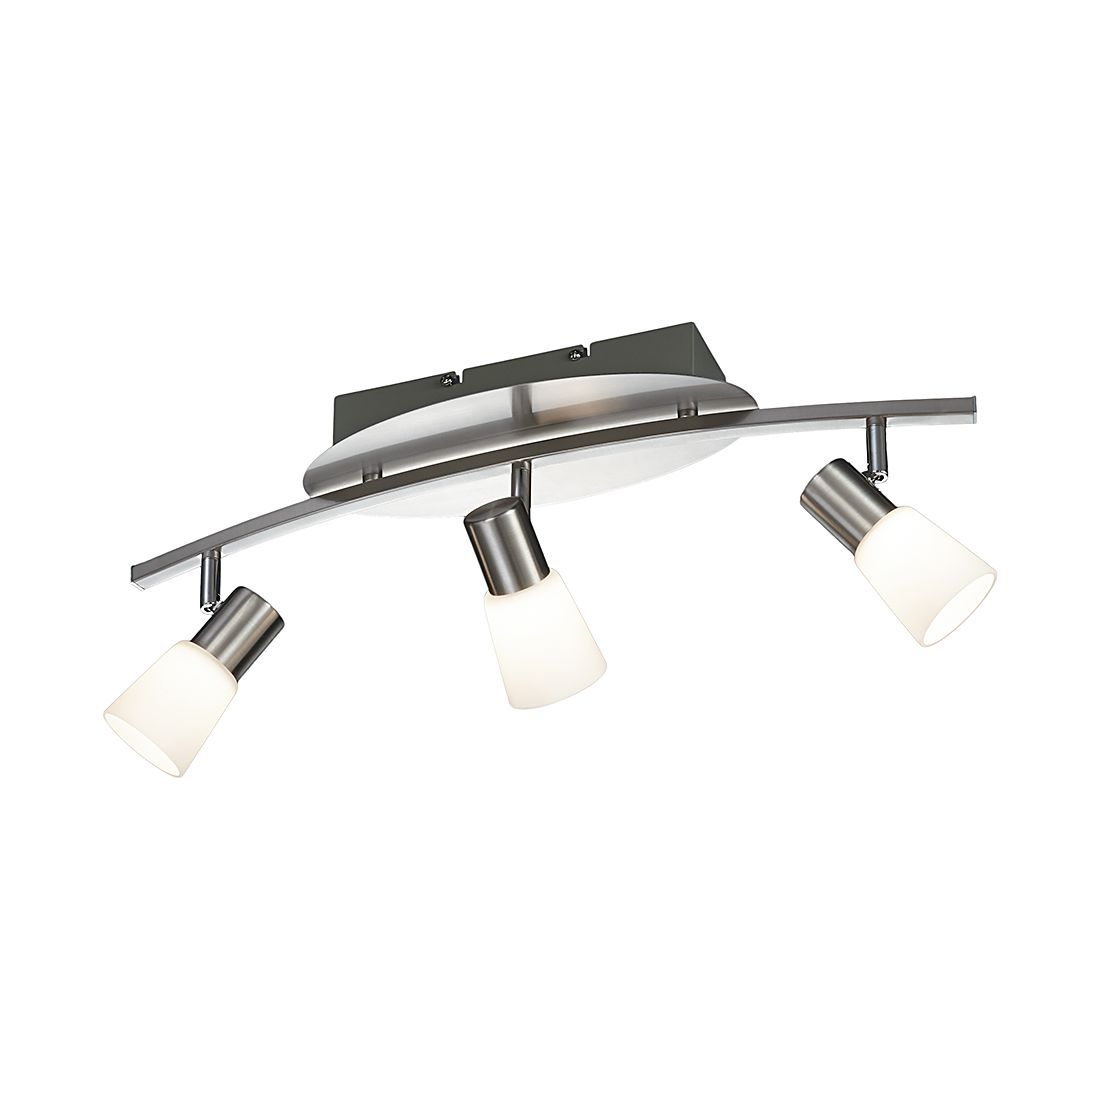 LED-Balken ● Nickel ● 3-flammig- Lux A+